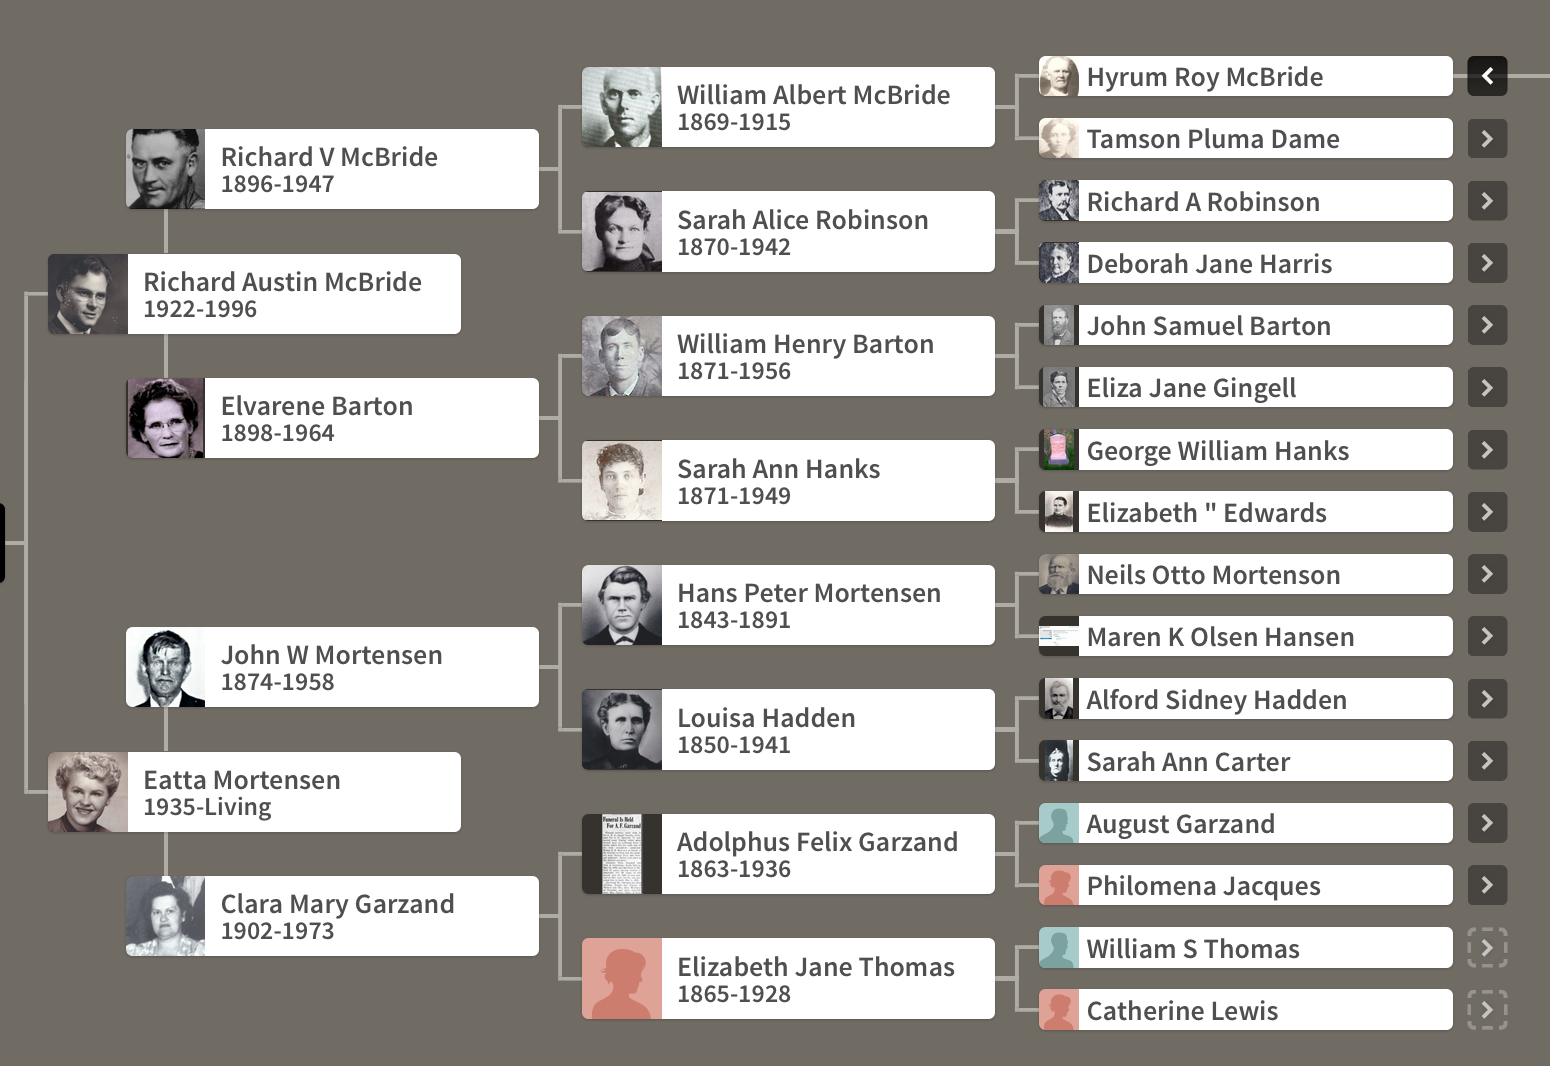 ancestors who crossed the united states plains to migrate to utah with the lds church mostly every single name in the right hand column was a pioneer